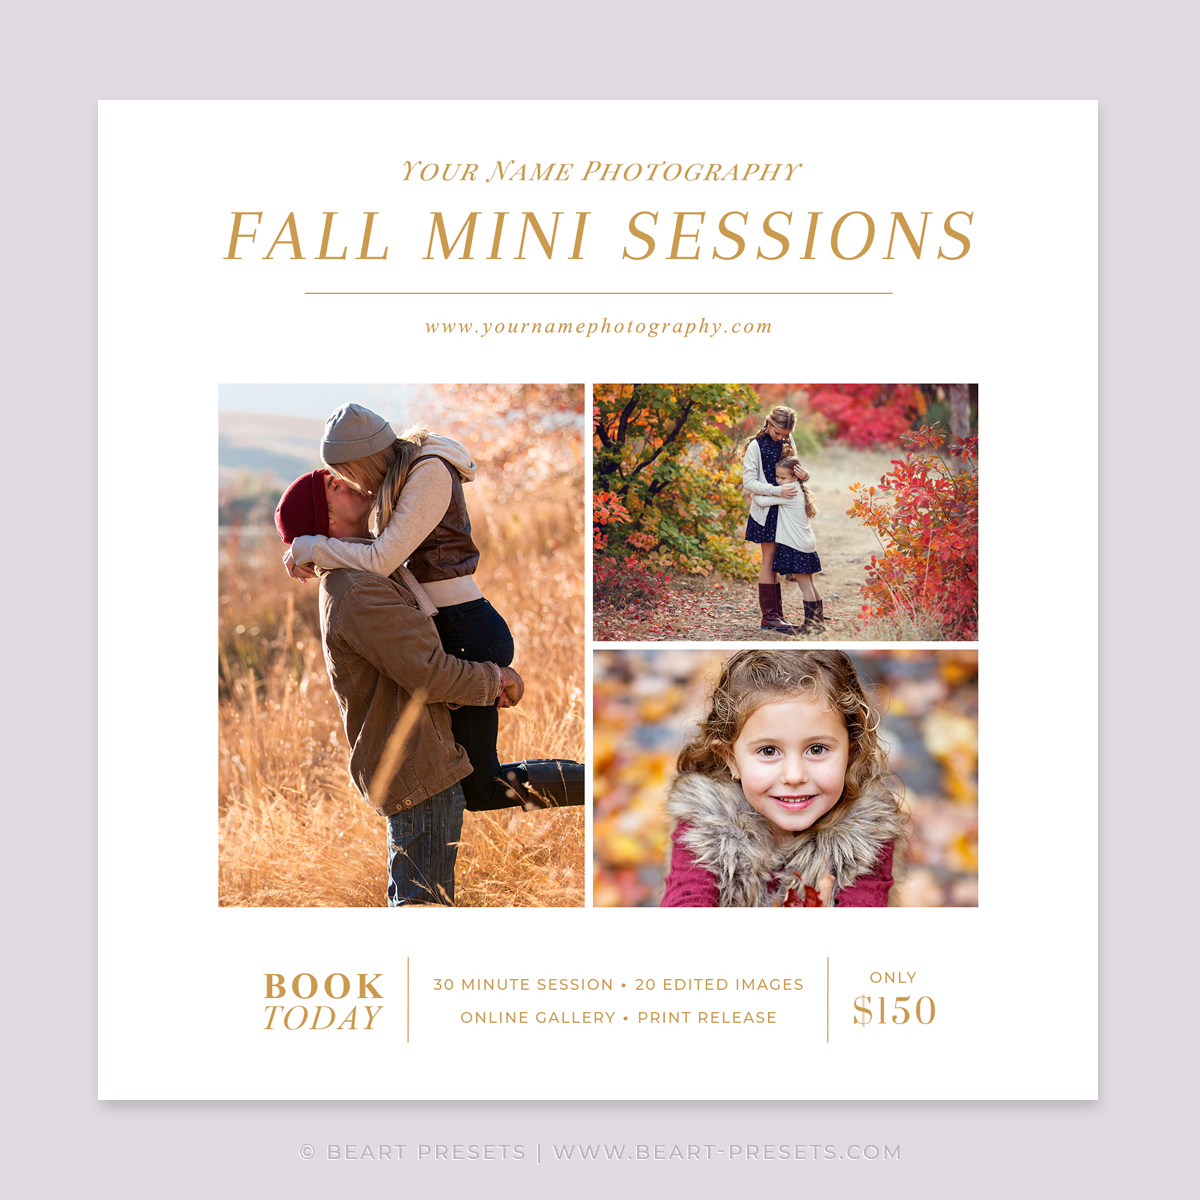 Autumn-mini-session-template-for-photographers.jpg